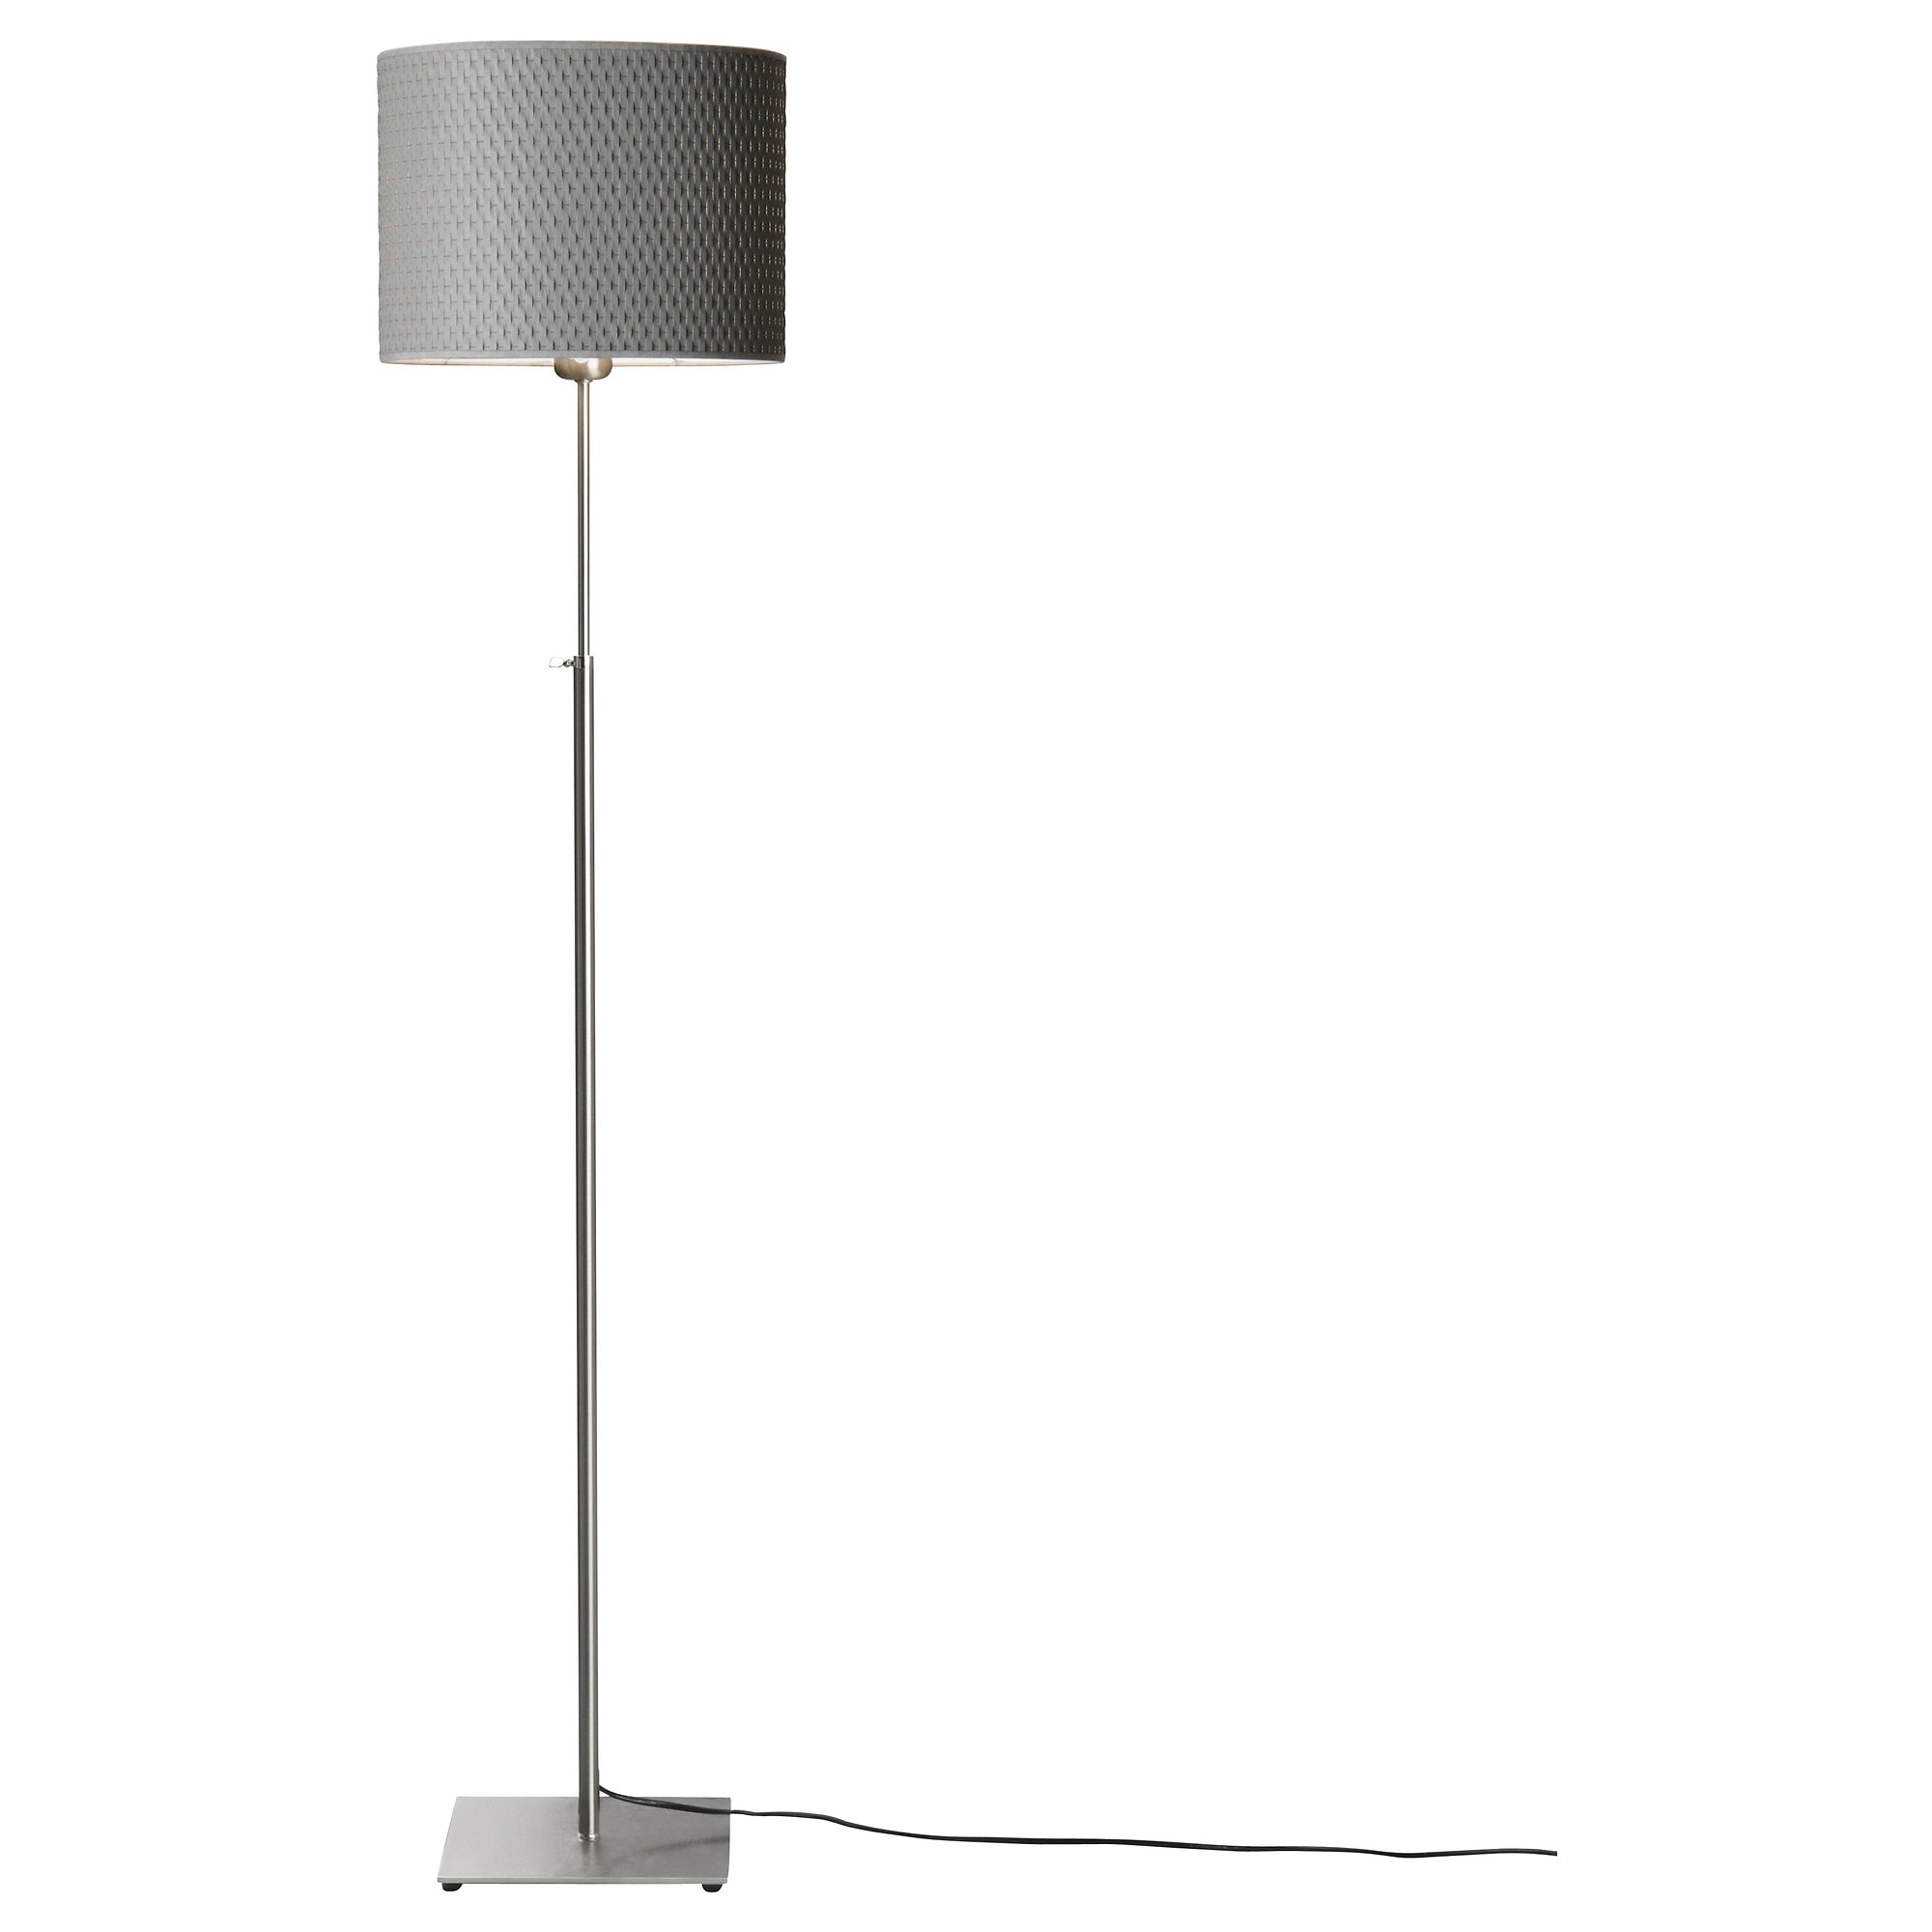 ALÄNG floor lamp with LED bulb, nickel plated, gray Width: 12